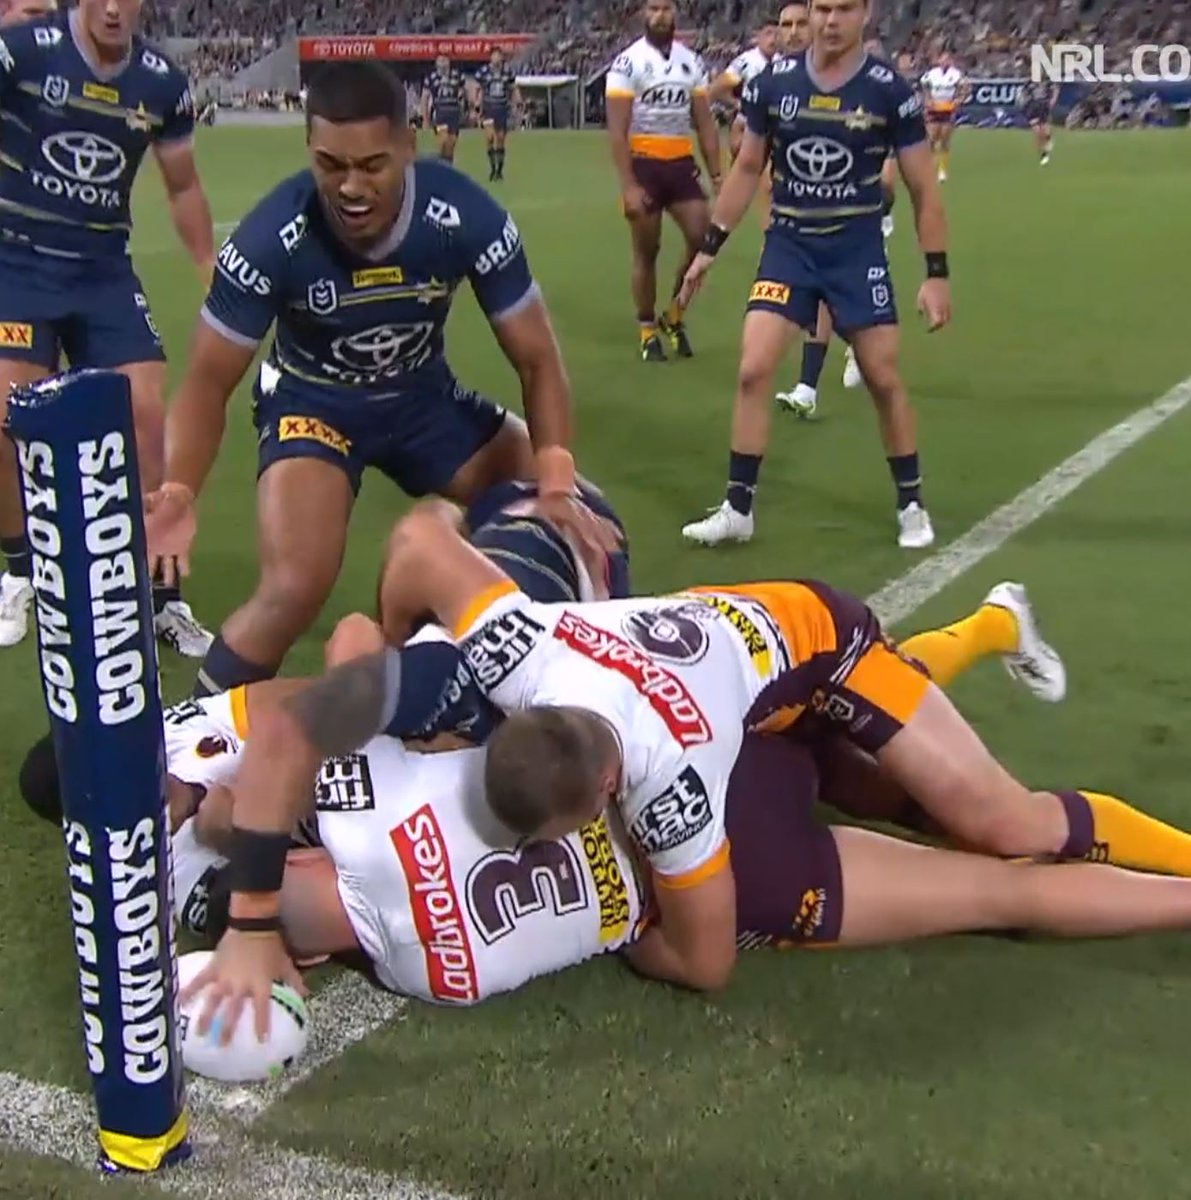 Kyle Feldt = THE RUBBERBAND MAN #ridemcowboys